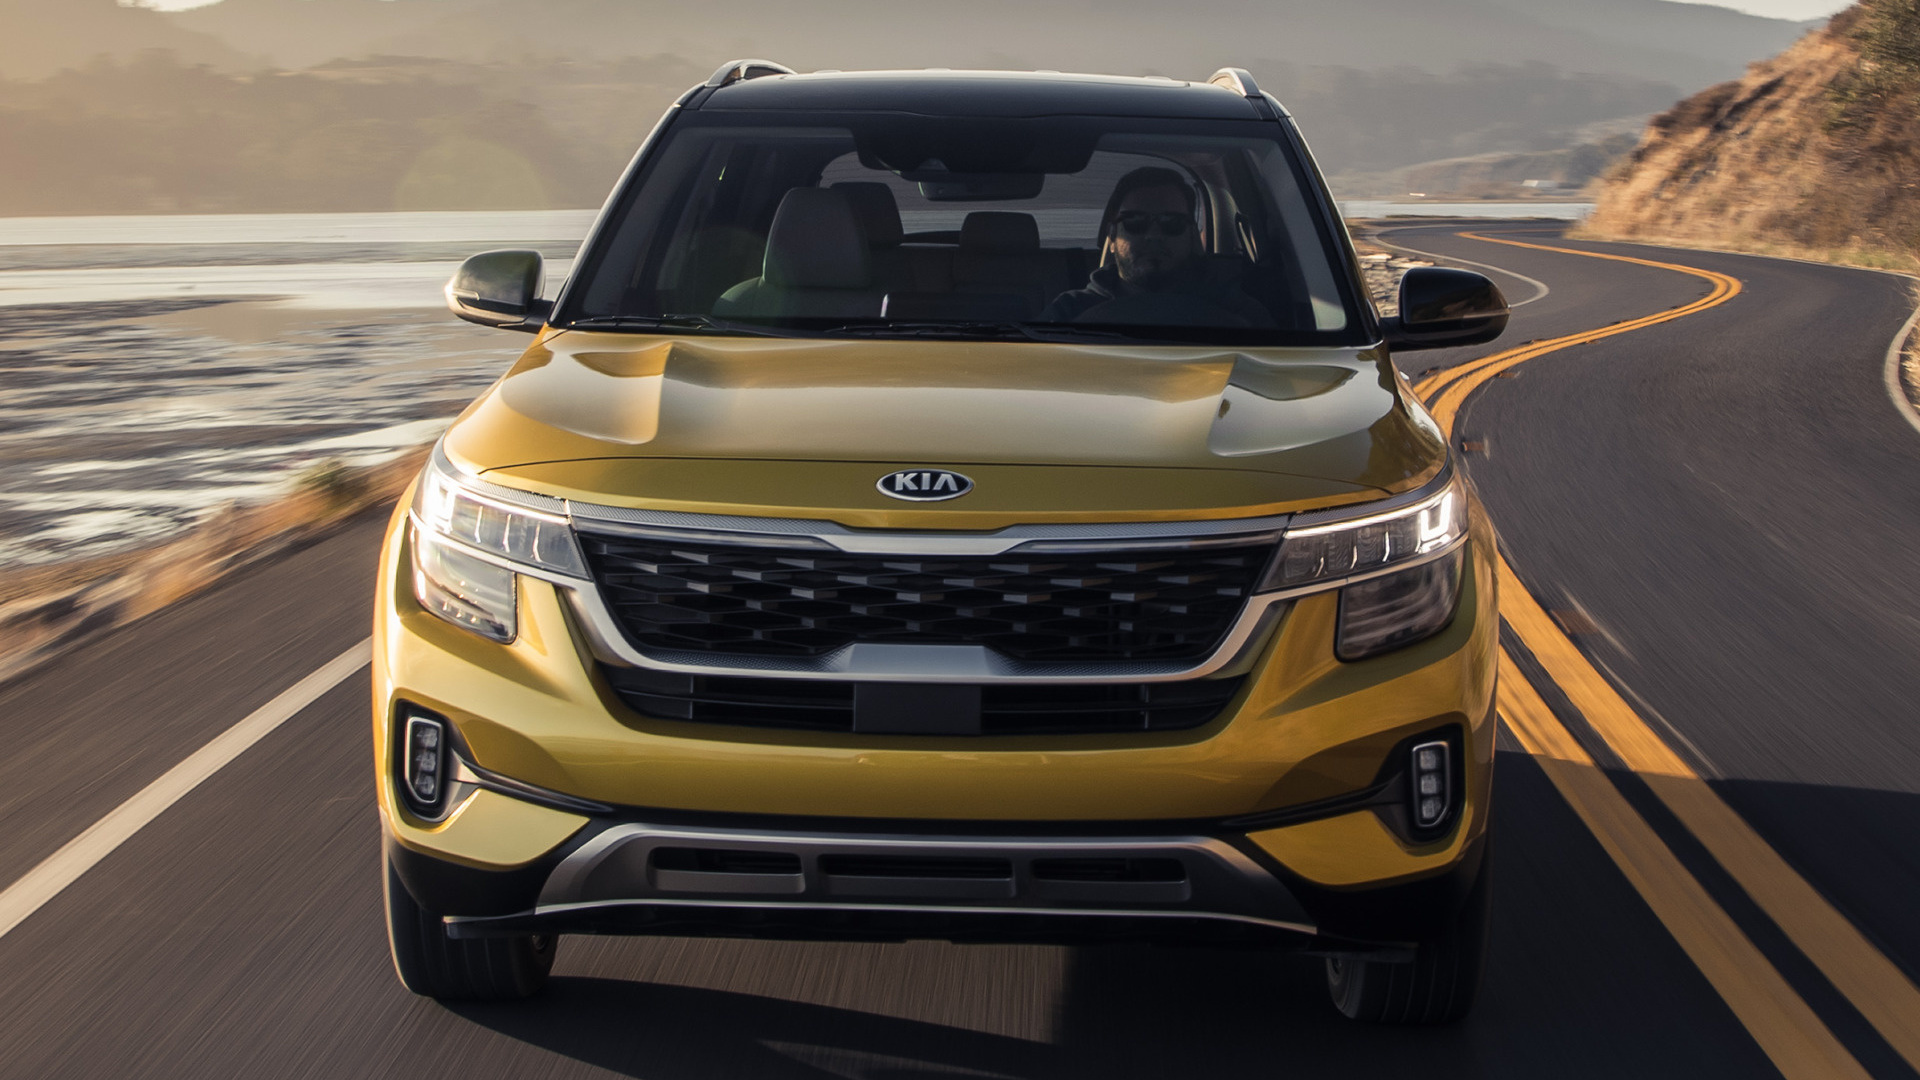 2021 kia seltos us  wallpapers and hd images  car pixel